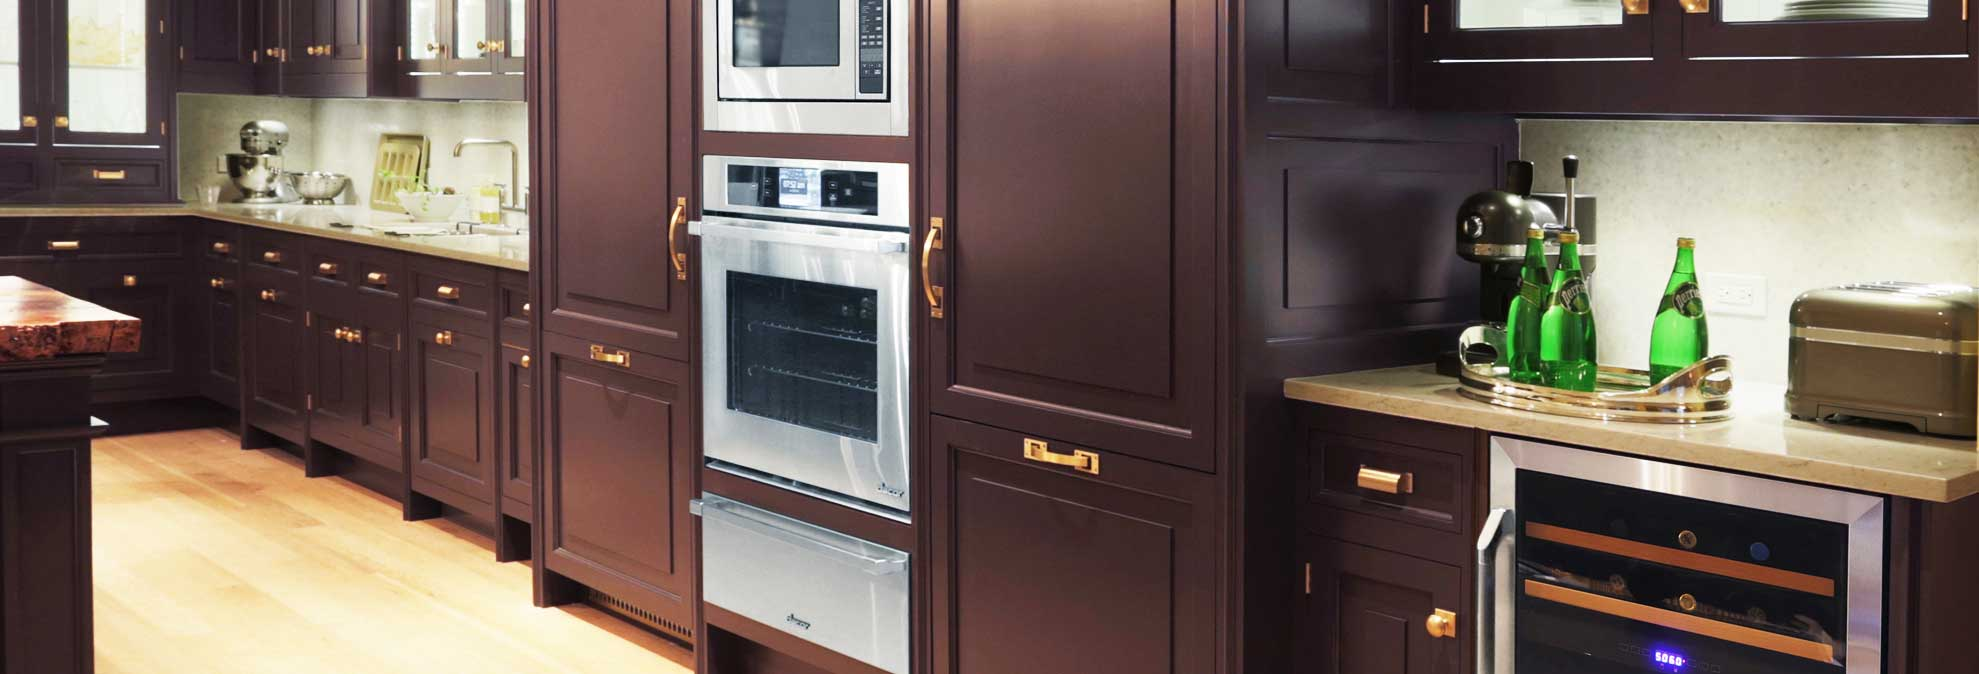 awesome Best Place To Get Kitchen Cabinets #1: Consumer Reports